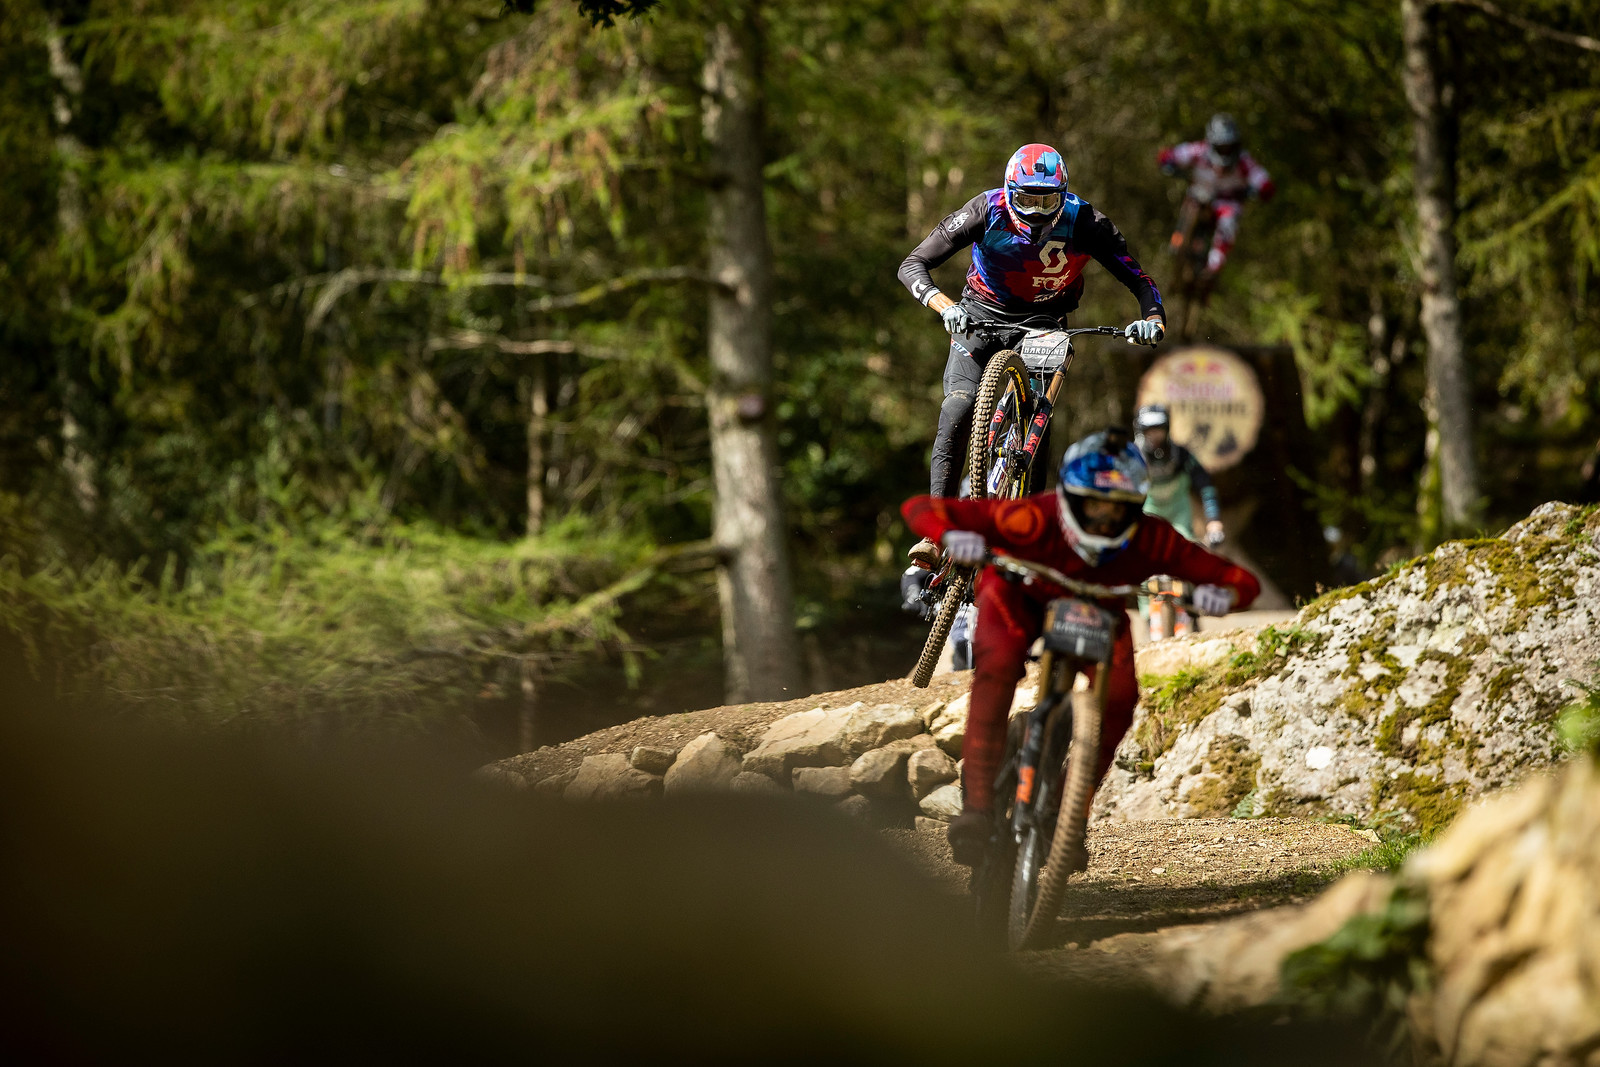 Florent Payet - Red Bull Hardline in Photos - Mountain Biking Pictures - Vital MTB